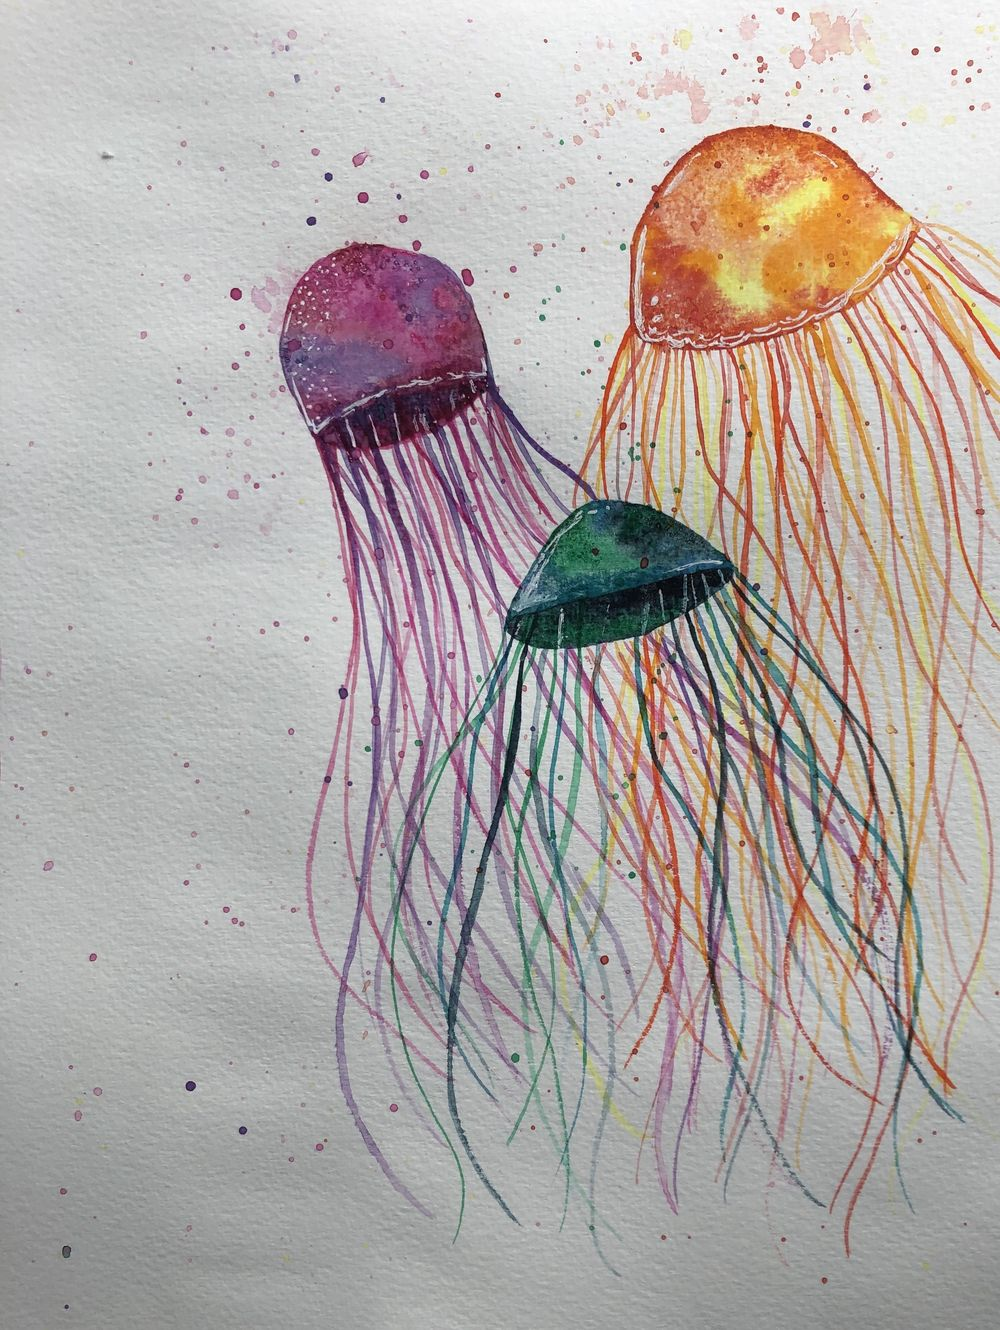 Galaxy, Monochrome Flower, Jellyfish & Other Exercises - image 4 - student project